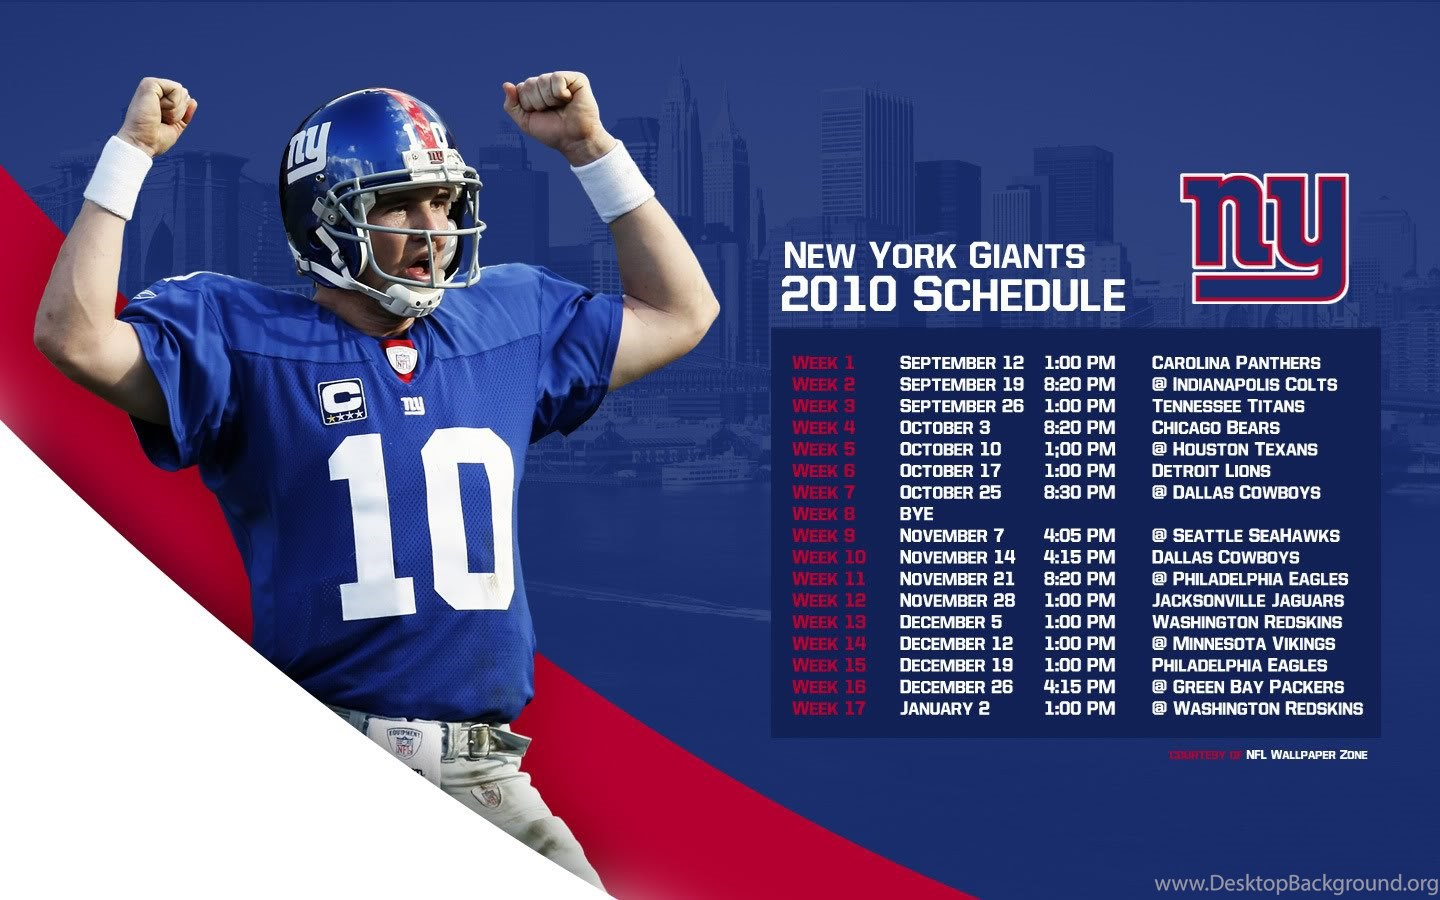 Nfl Wallpapers Zone Ny New York Giants 2010 Schedule Wallpapers